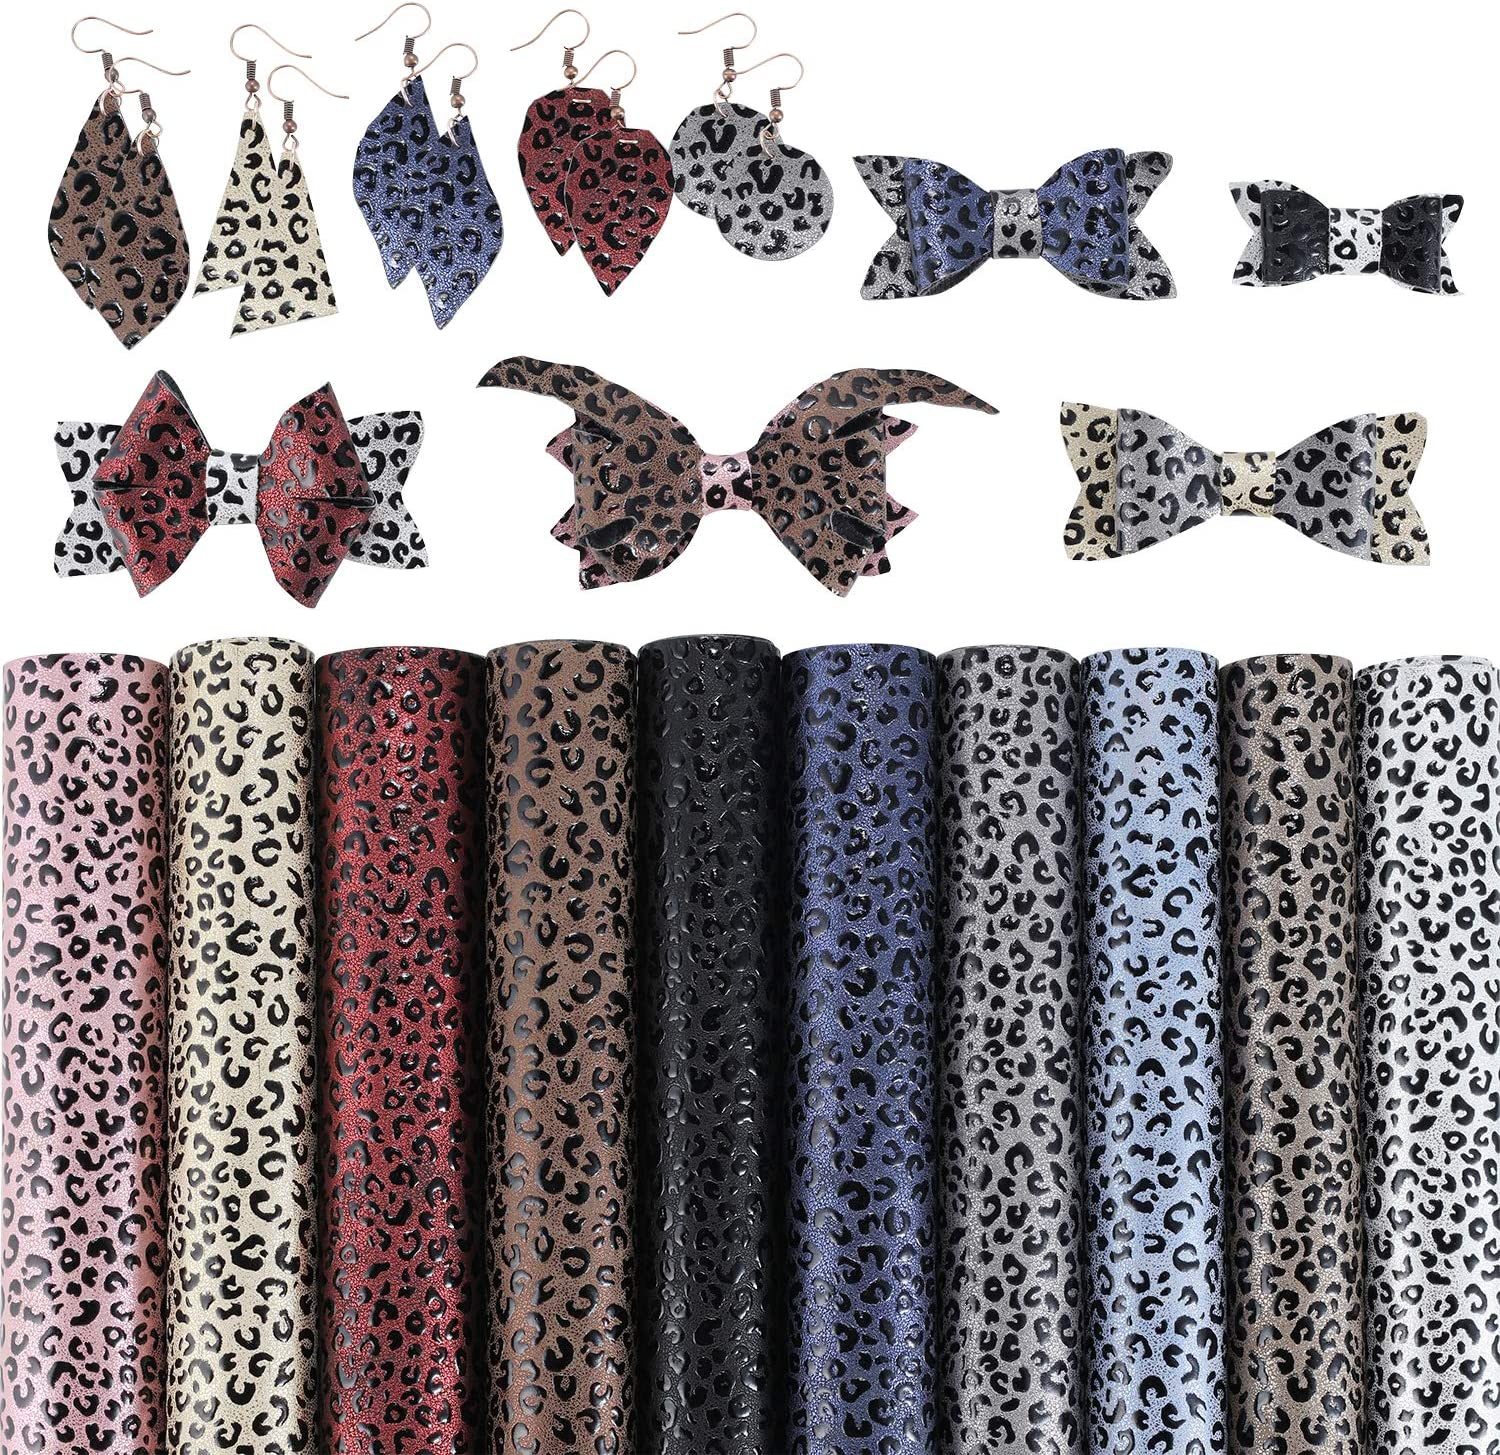 SHUANGART 10 Pieces Leopard Printed Fauxs Leather Sheets【8 X 12//21 X 30 cm】for Bows Earrings Purse Handbags Crafts Jewelry Making Embossed Synthetic Fabric 1 mm Thickness Assorted Color